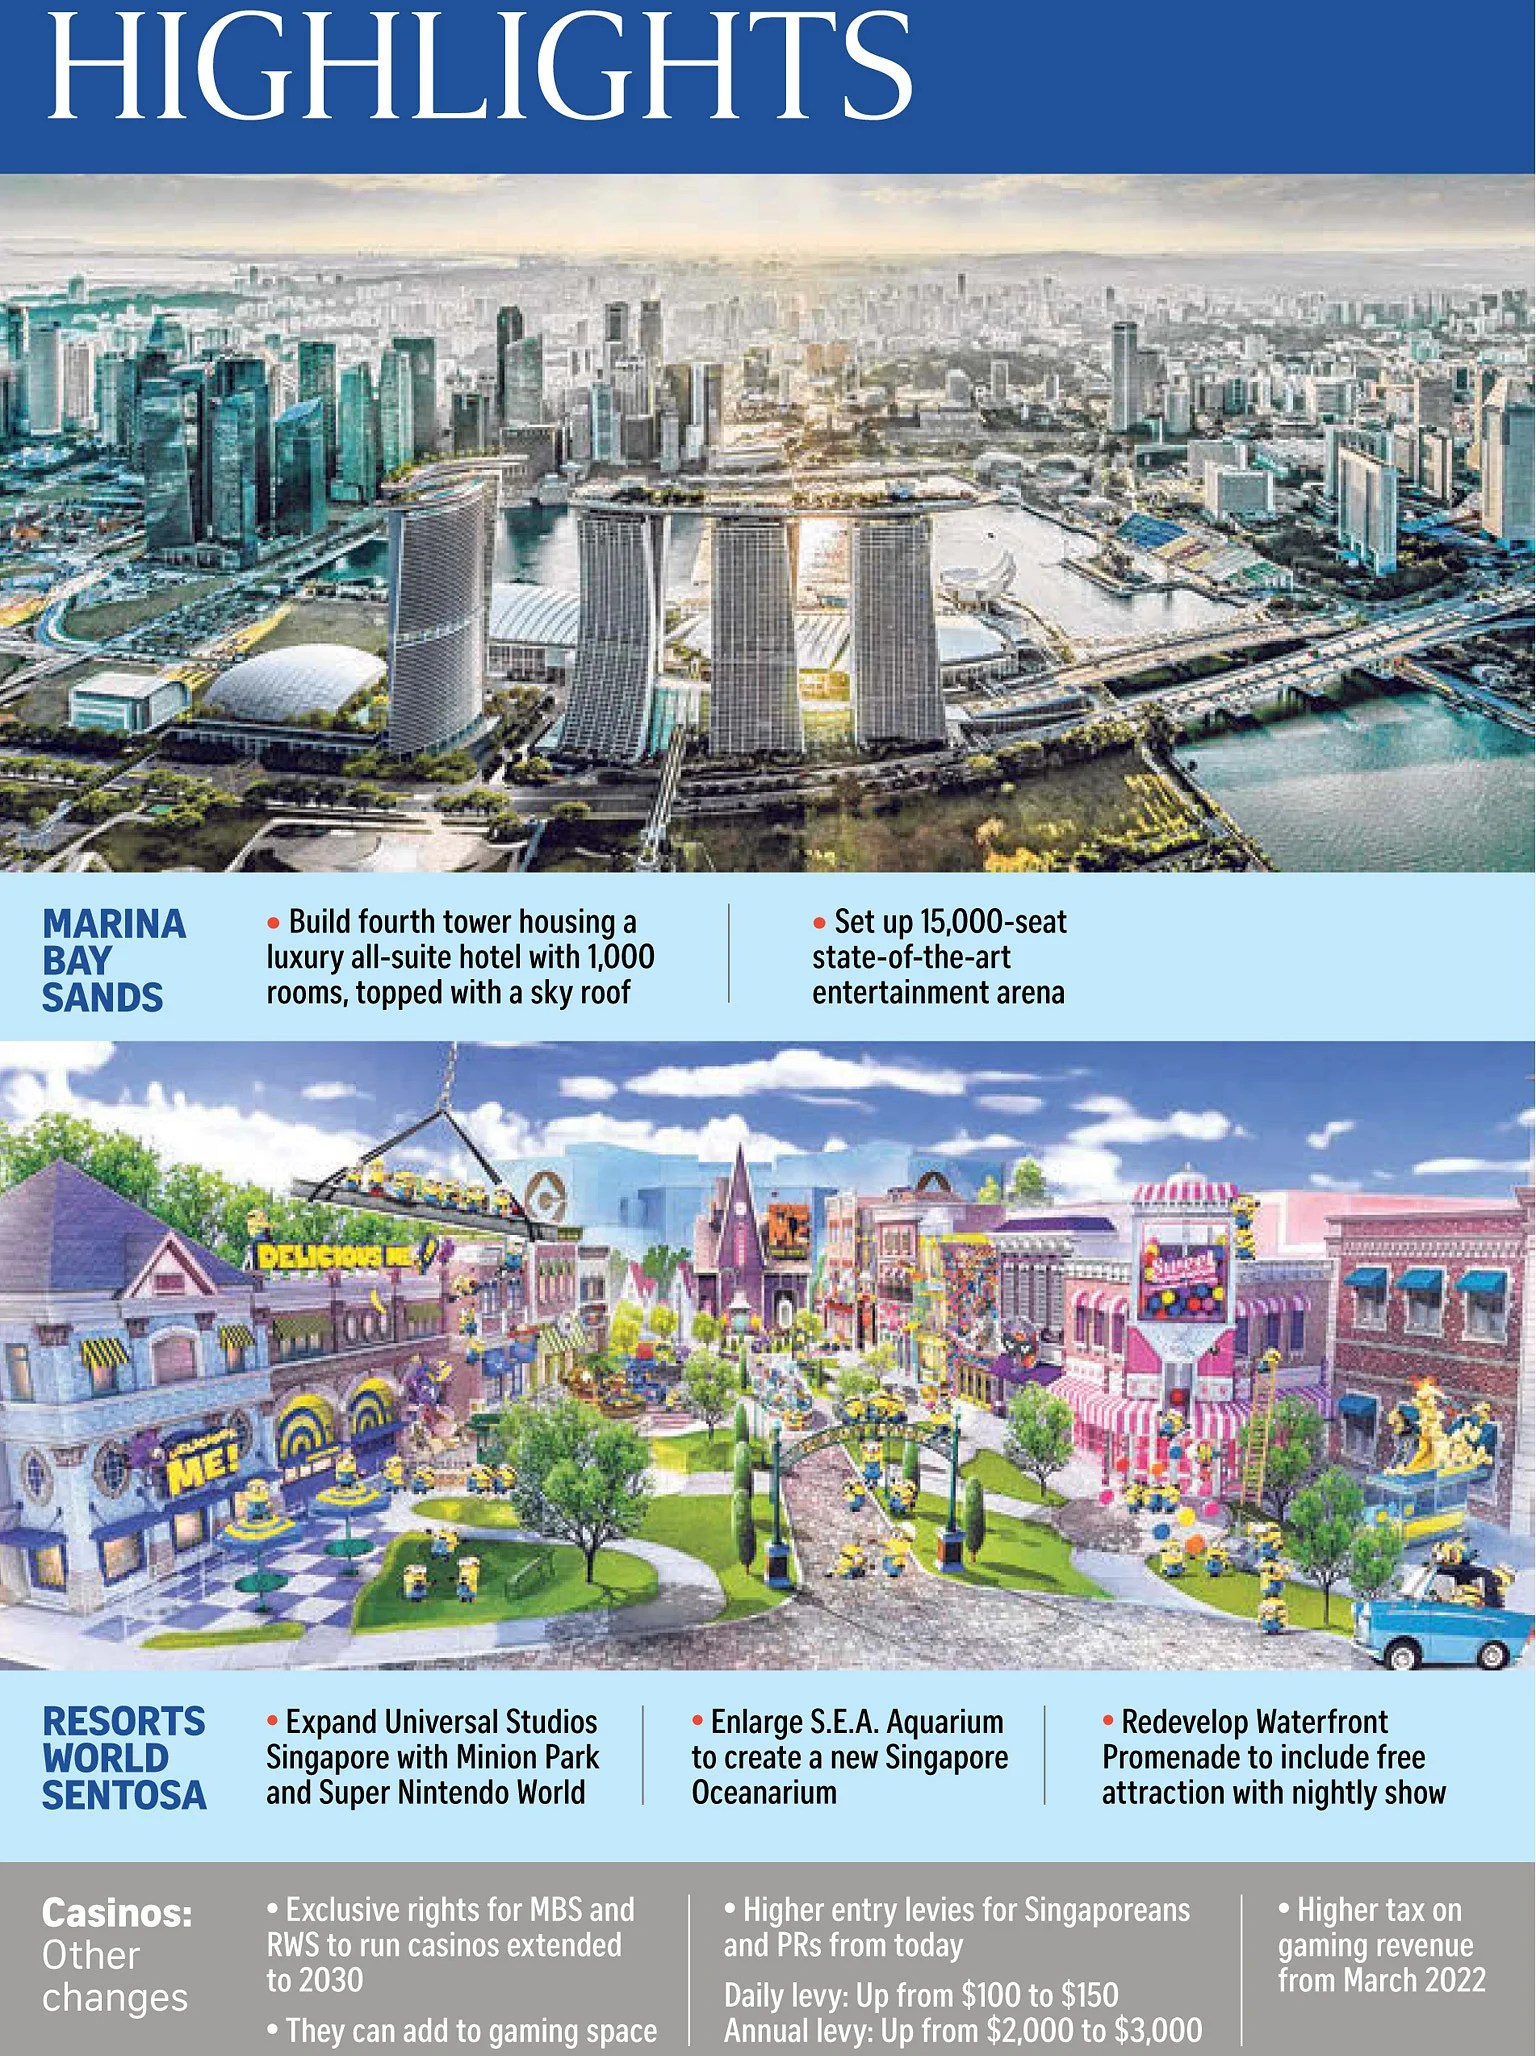 MBS and RWS to invest $9b in new attractions, Singapore News & Top Stories - The Straits Times